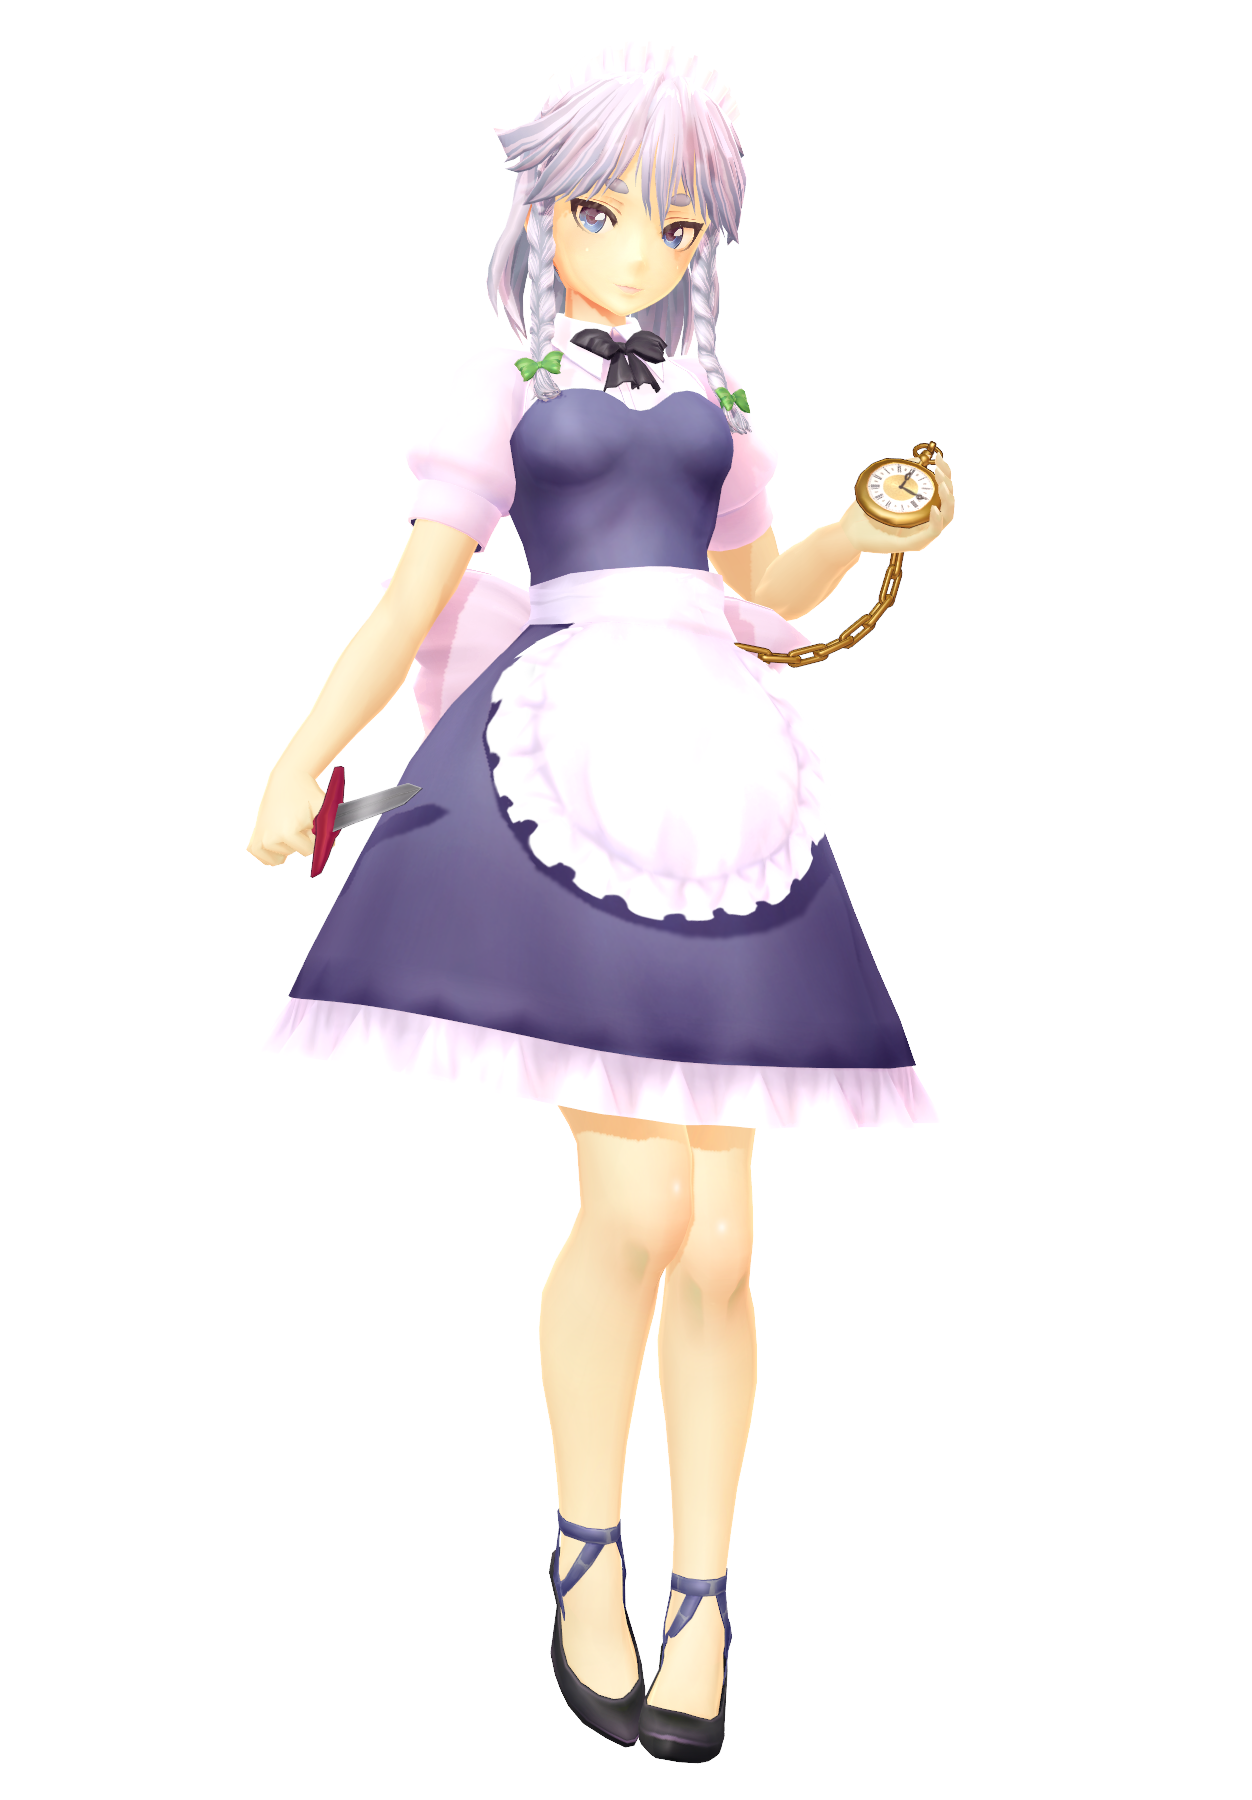 3d mmd voluptous sakuya and patchouli in kiss me 4